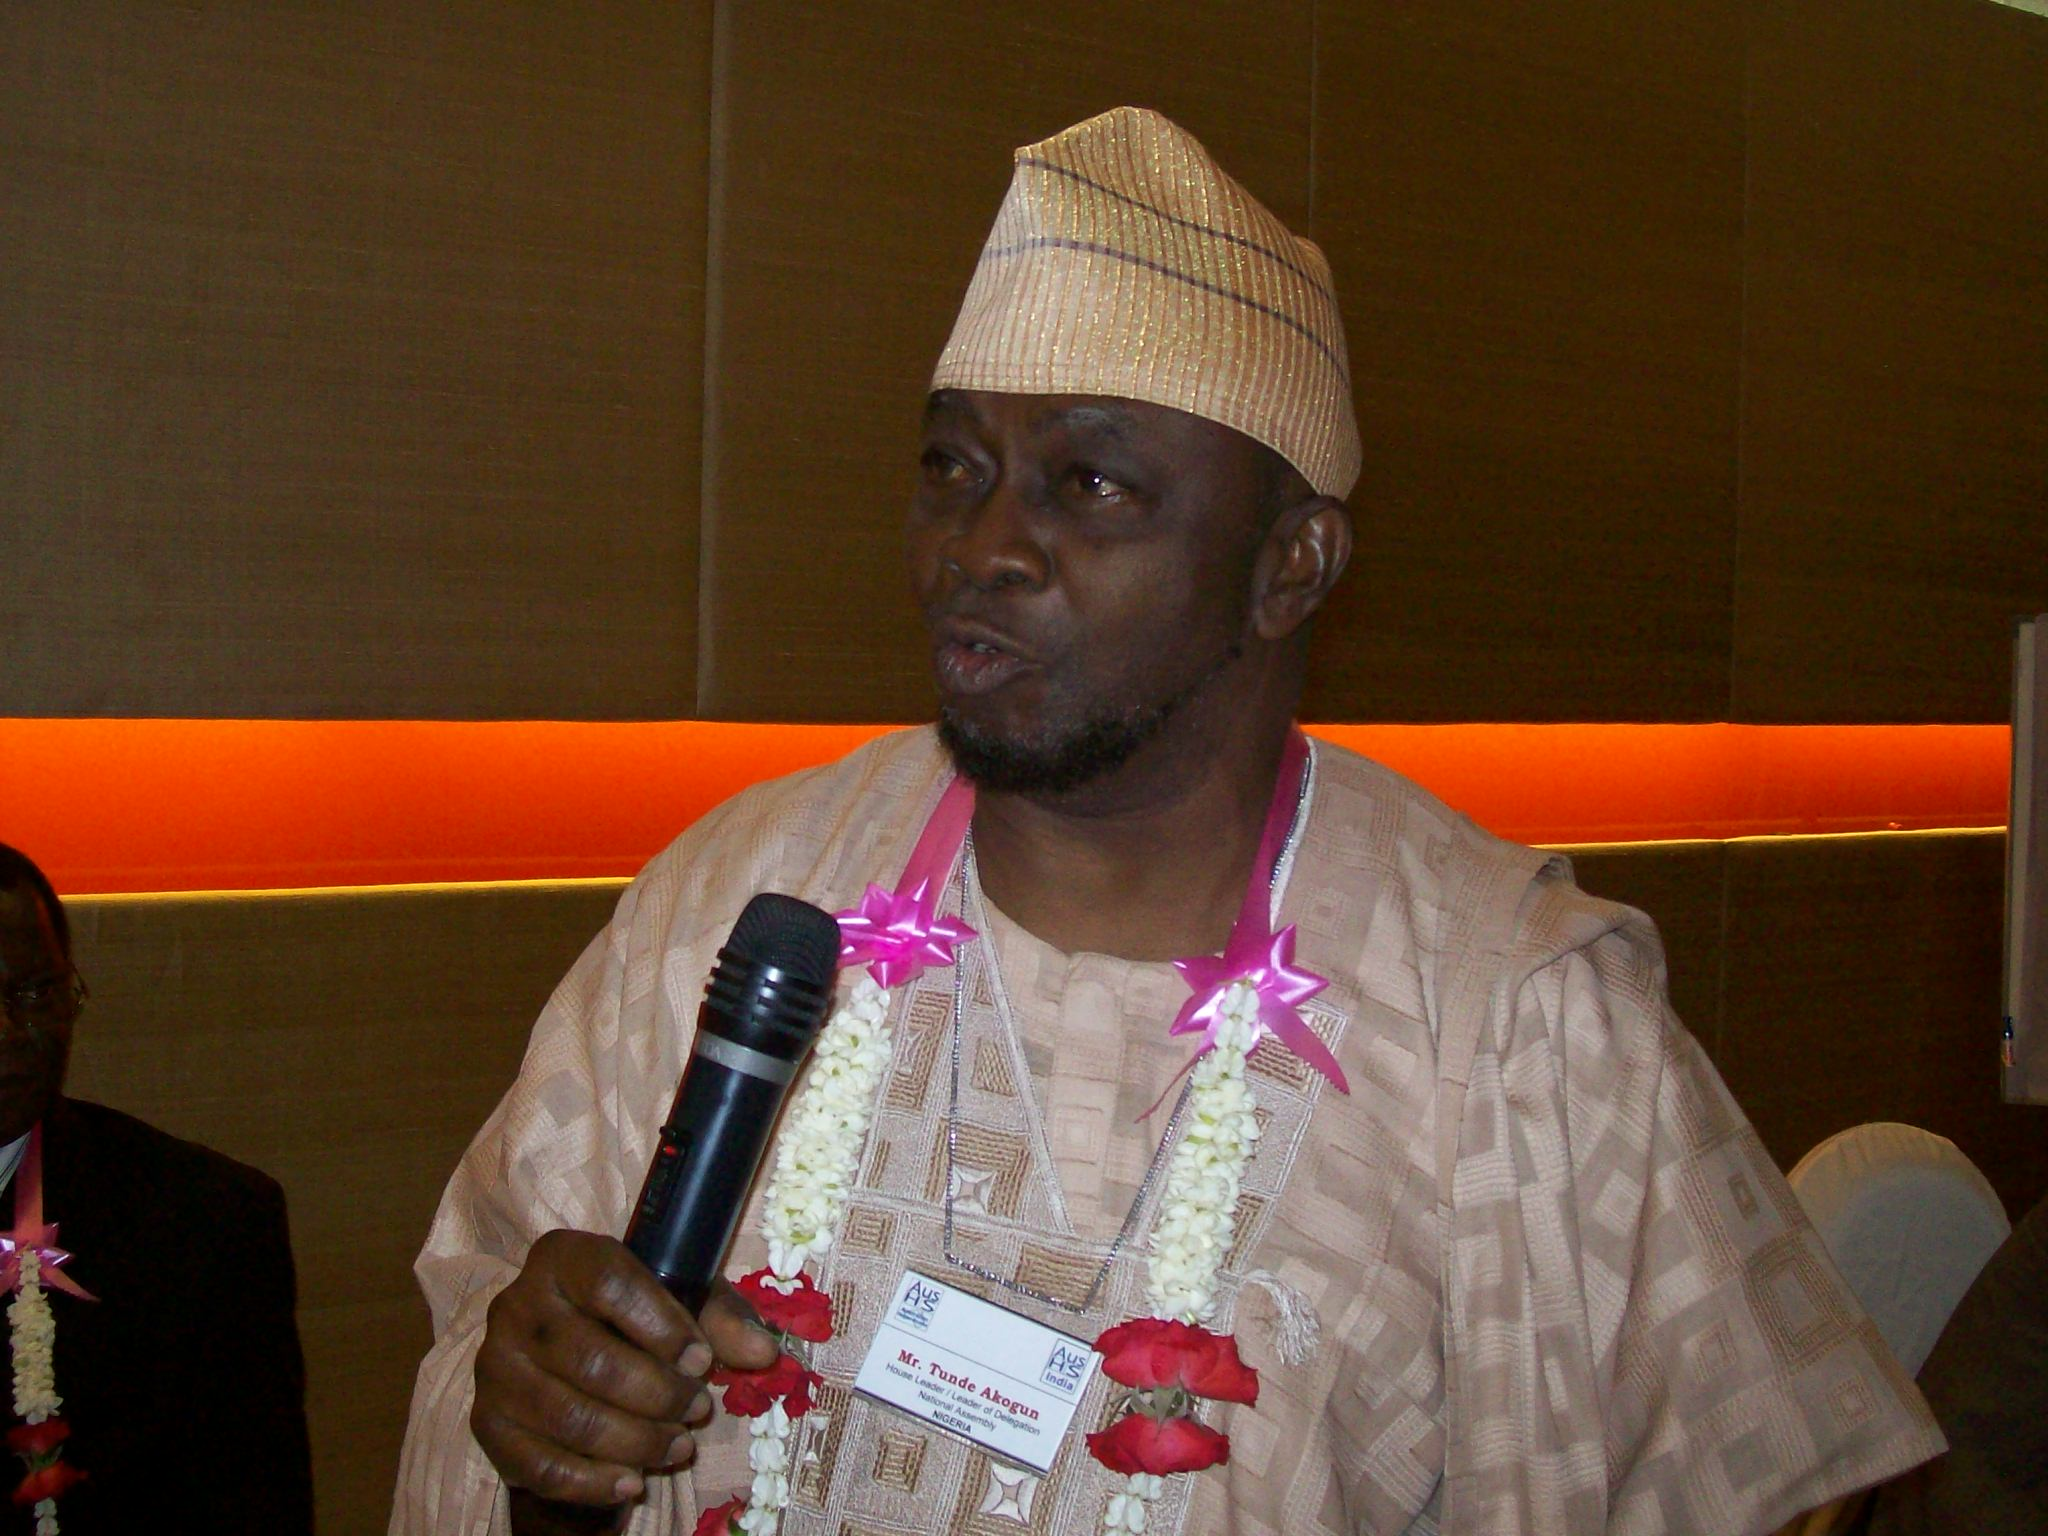 Mr. Tunde Akogun, Hon. House Leader, National Assembly, NIGERIA during an introductory presentation of the workshop.